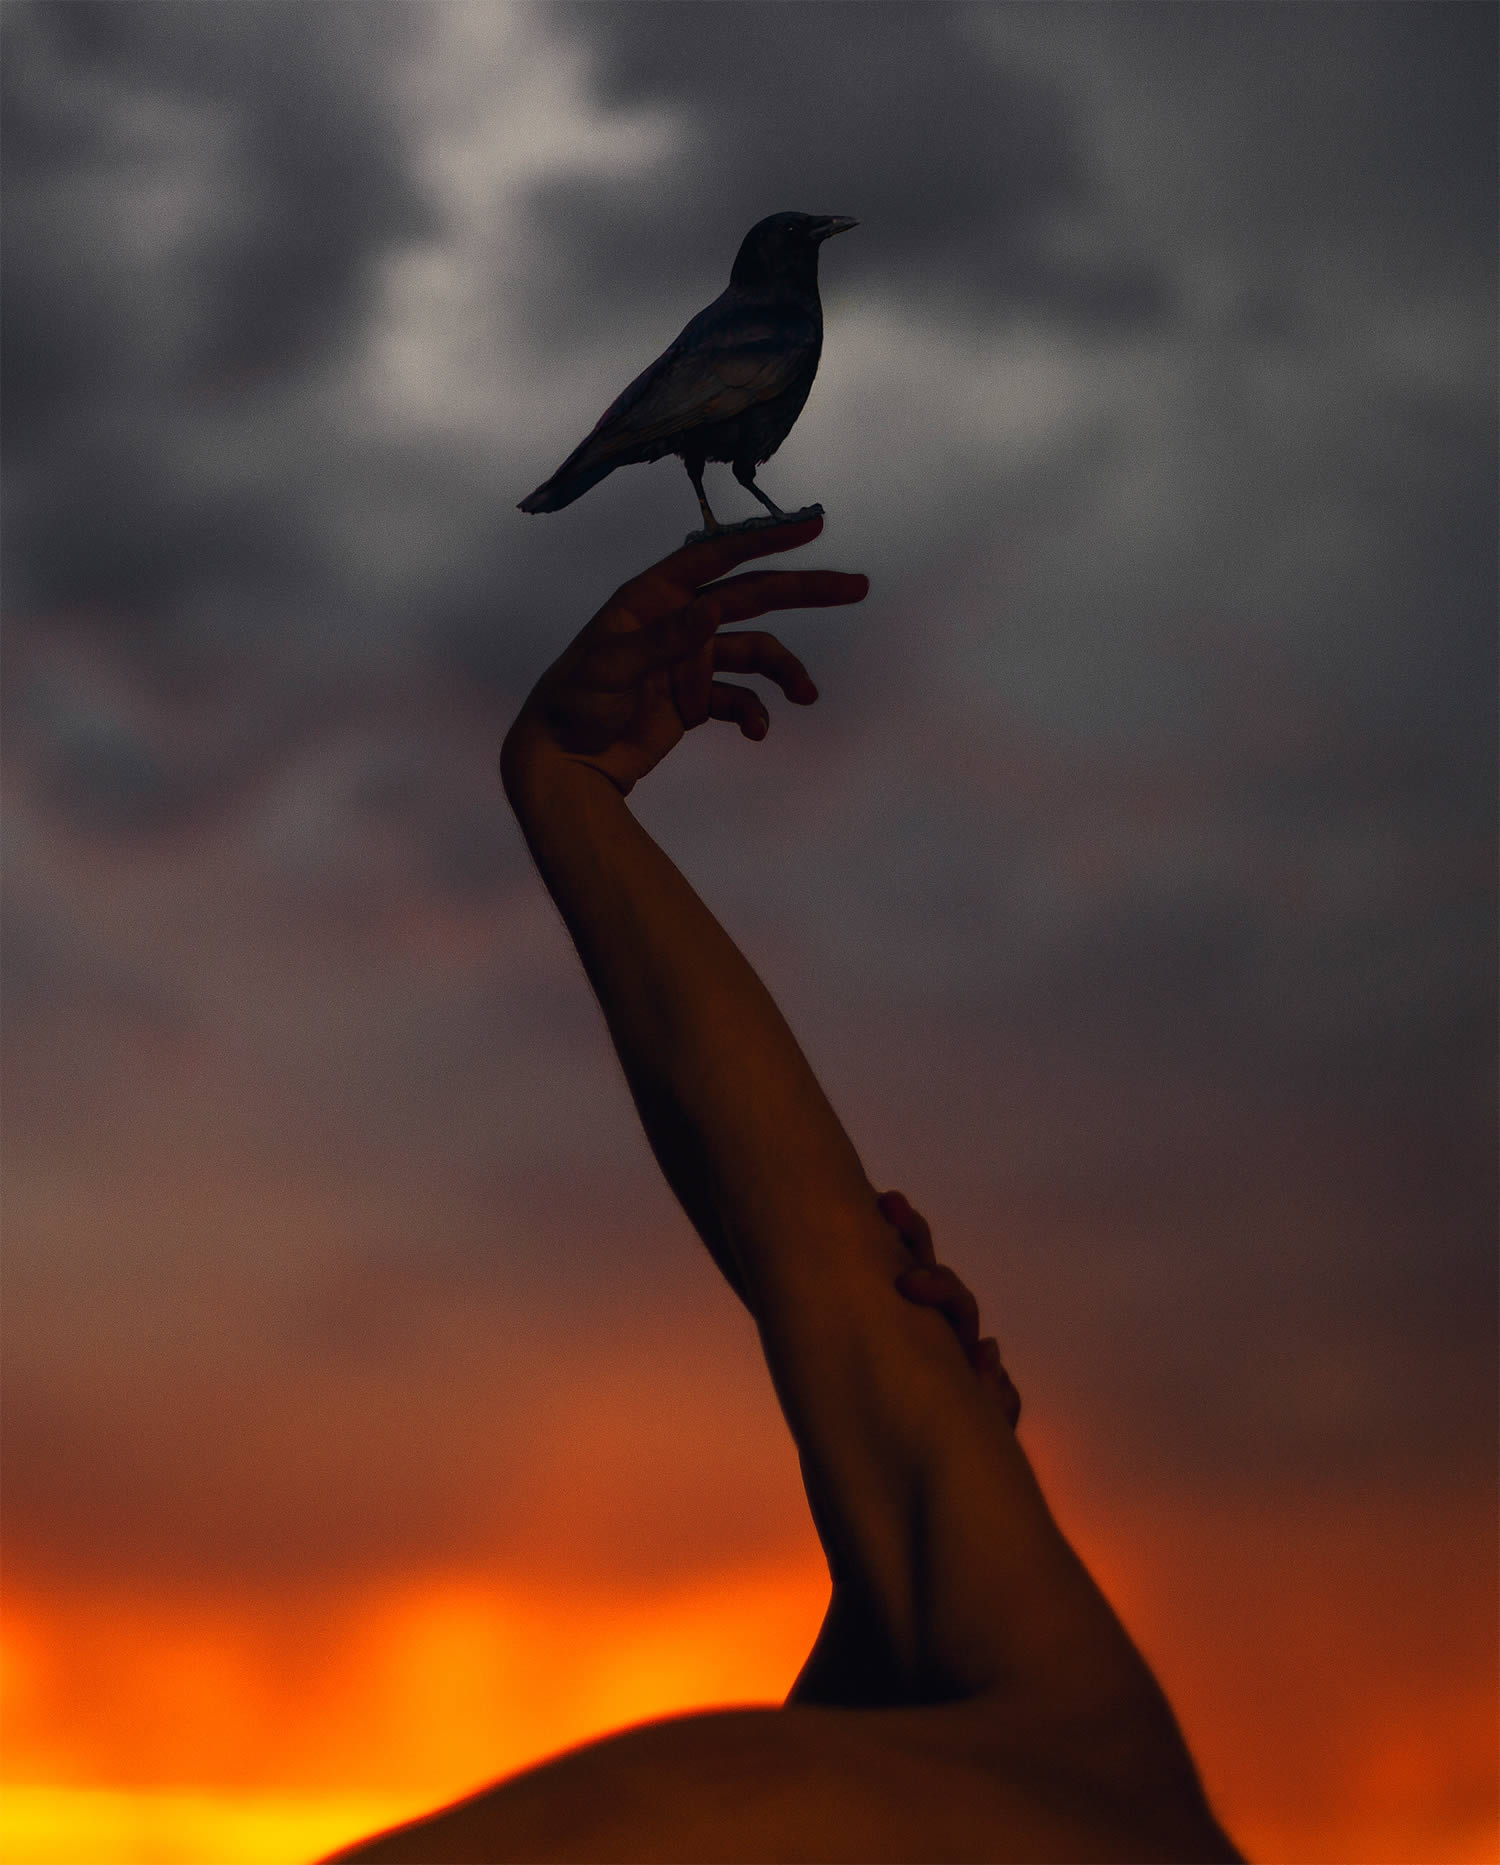 hand up in the air, holding a bird, sunset, photography